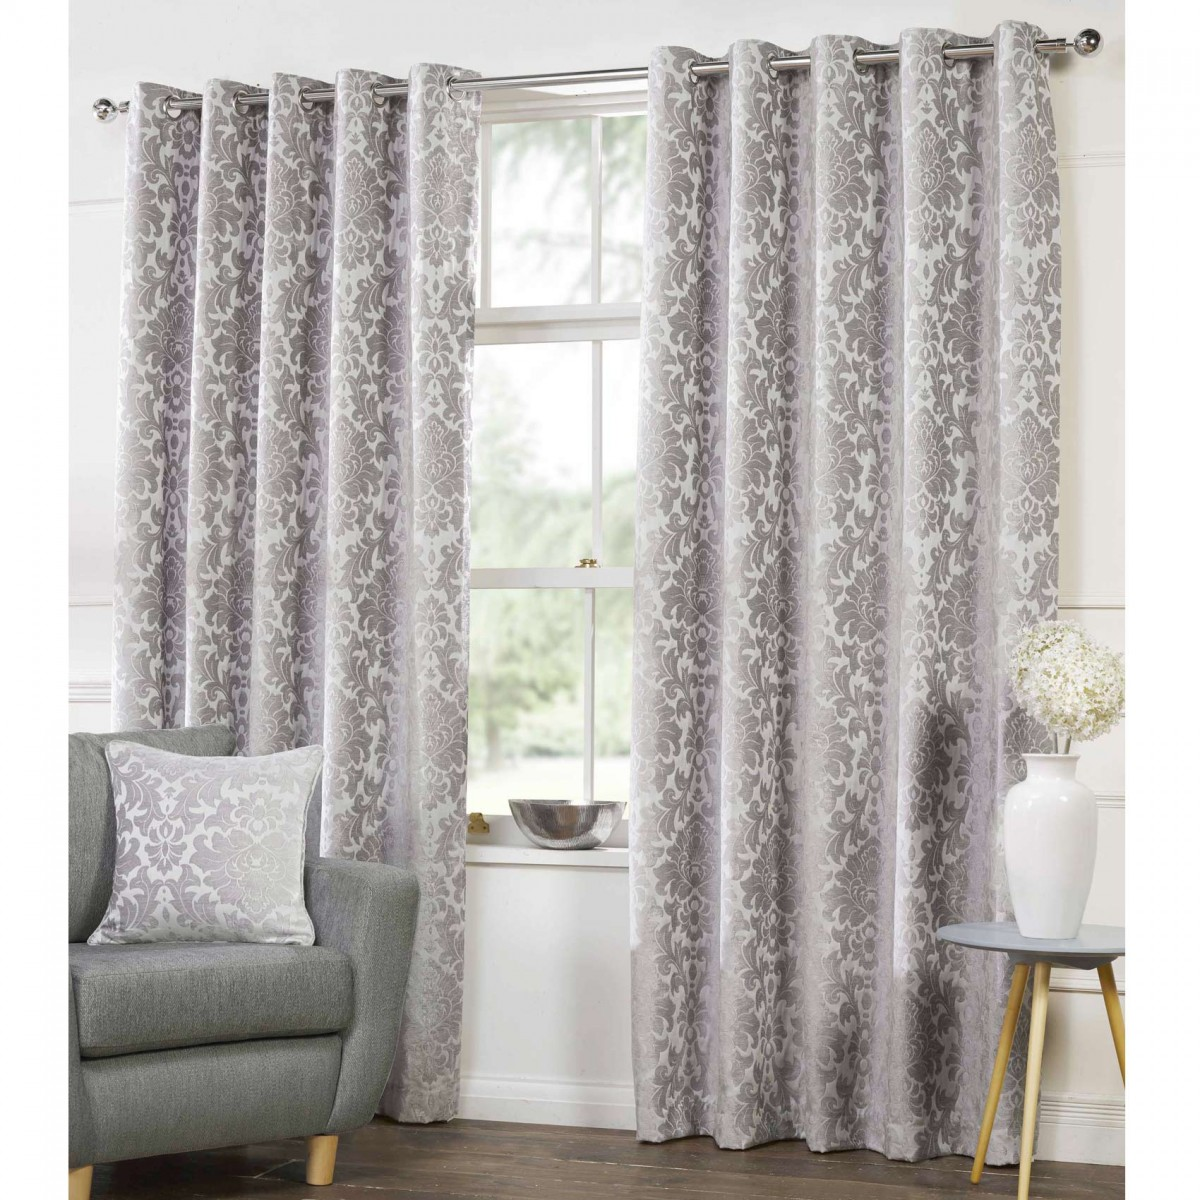 silver curtains 40% off camden damask woven chenille lined eyelet curtains - silver PJKPNDS